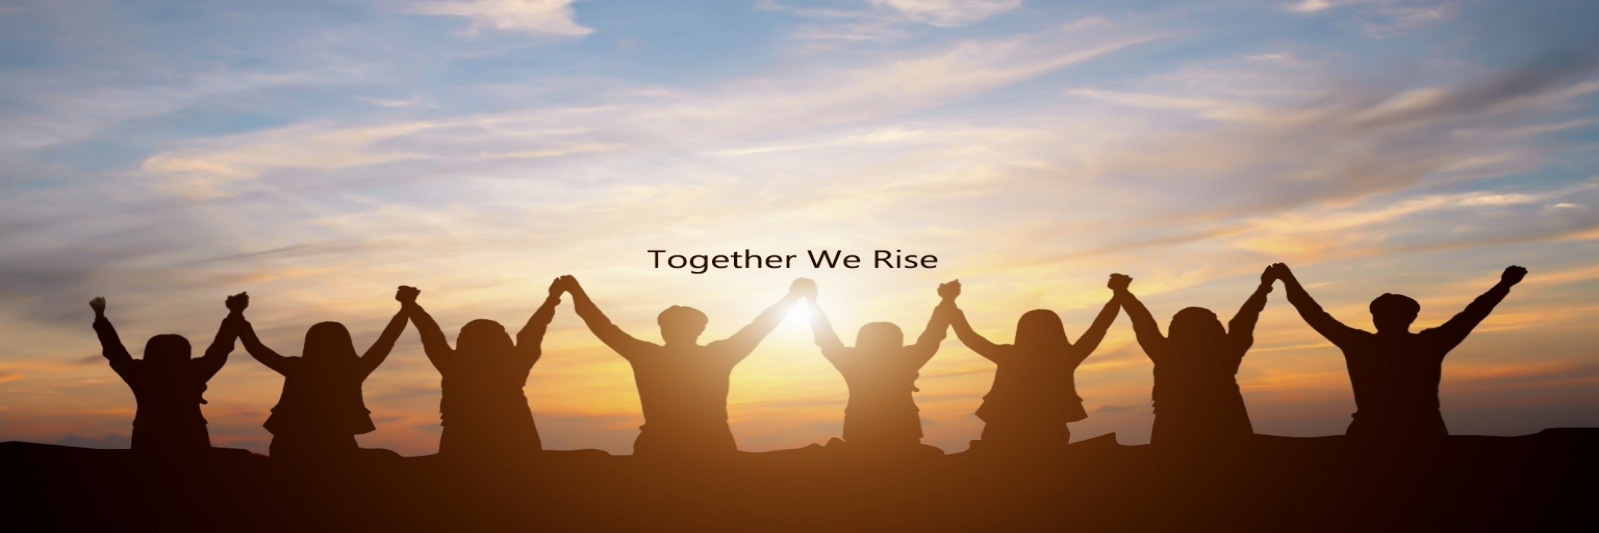 Together-we-Rise.png